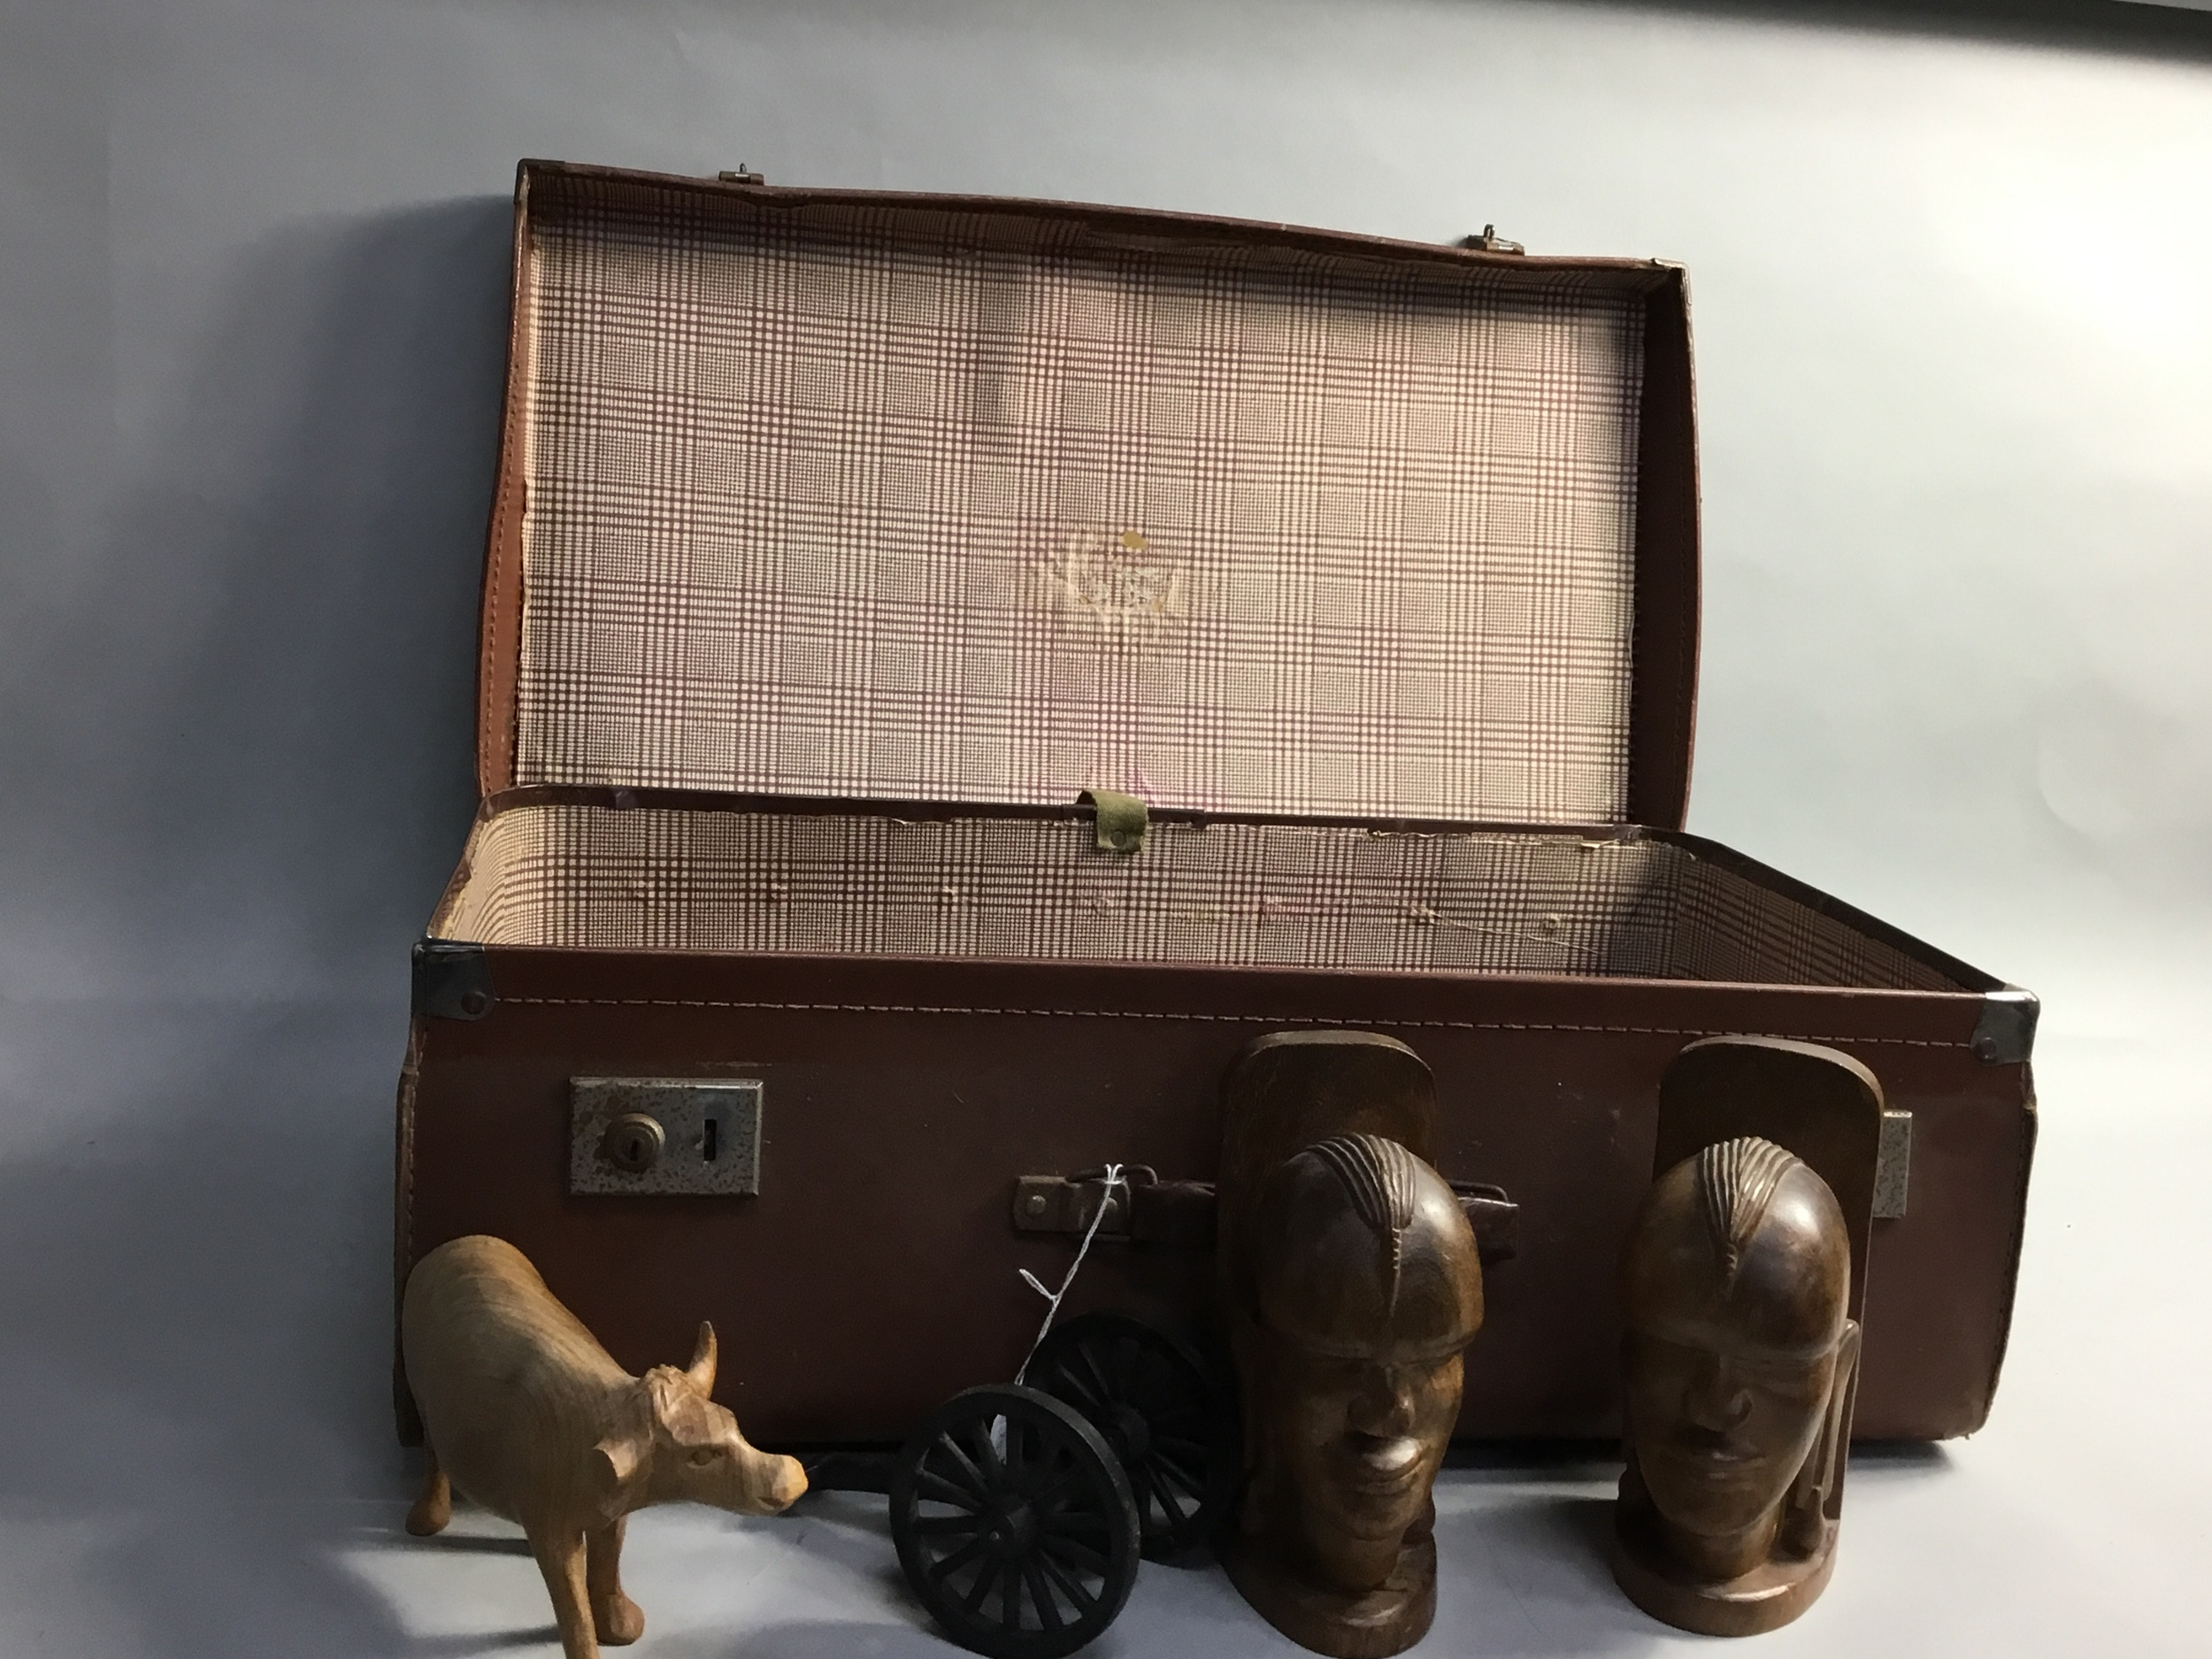 A LOT OF WOOD ITEMS INCLUDING ANIMAL FIGURES CONTAINED IN A SUITCASE